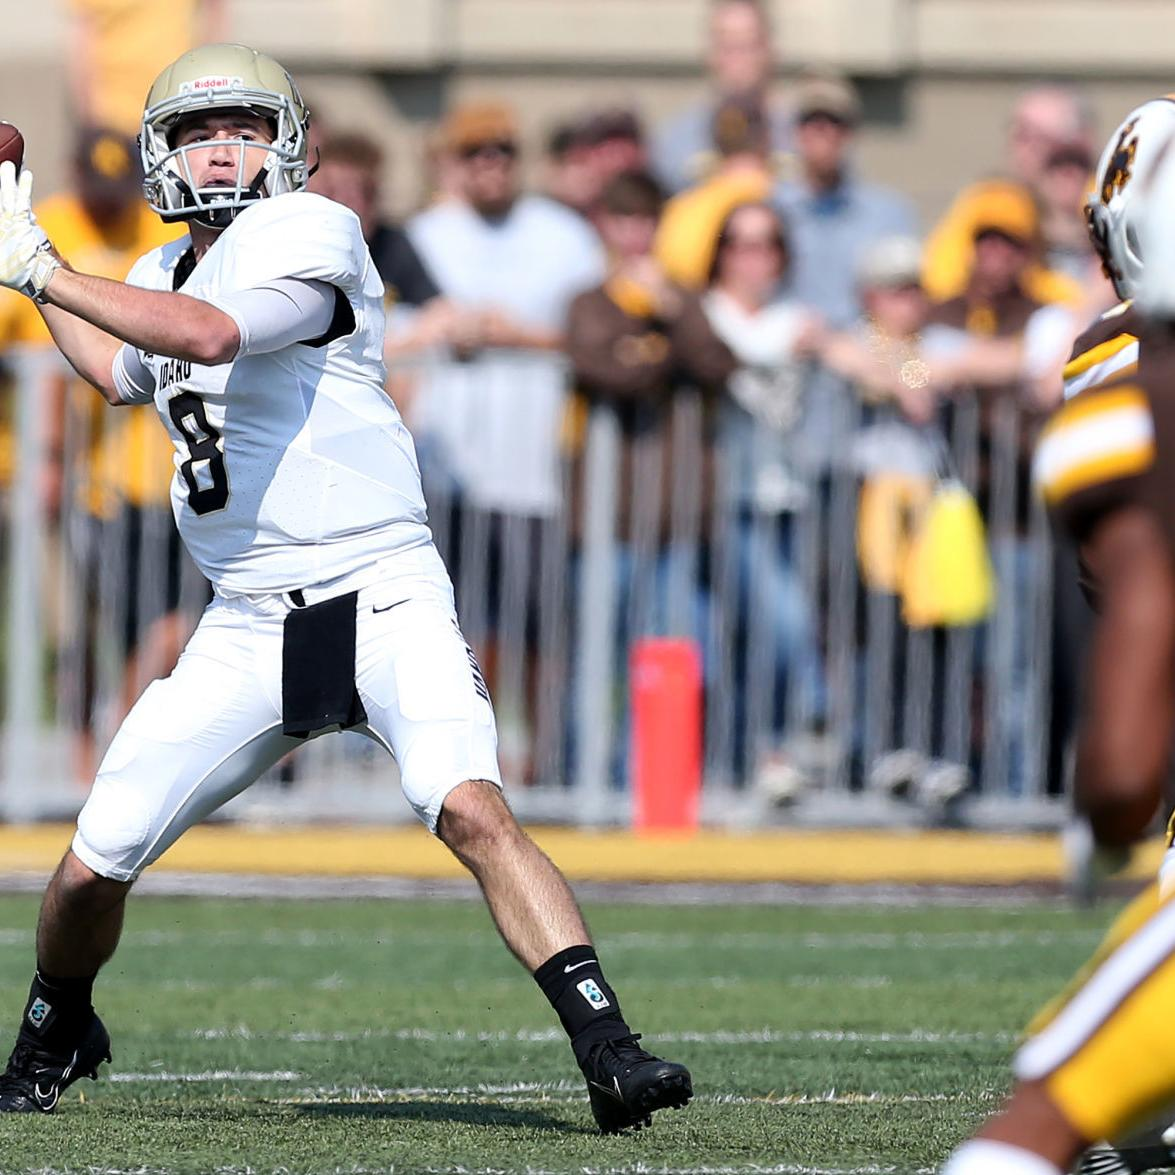 It's official: Mason Petrino is Idaho's starting QB